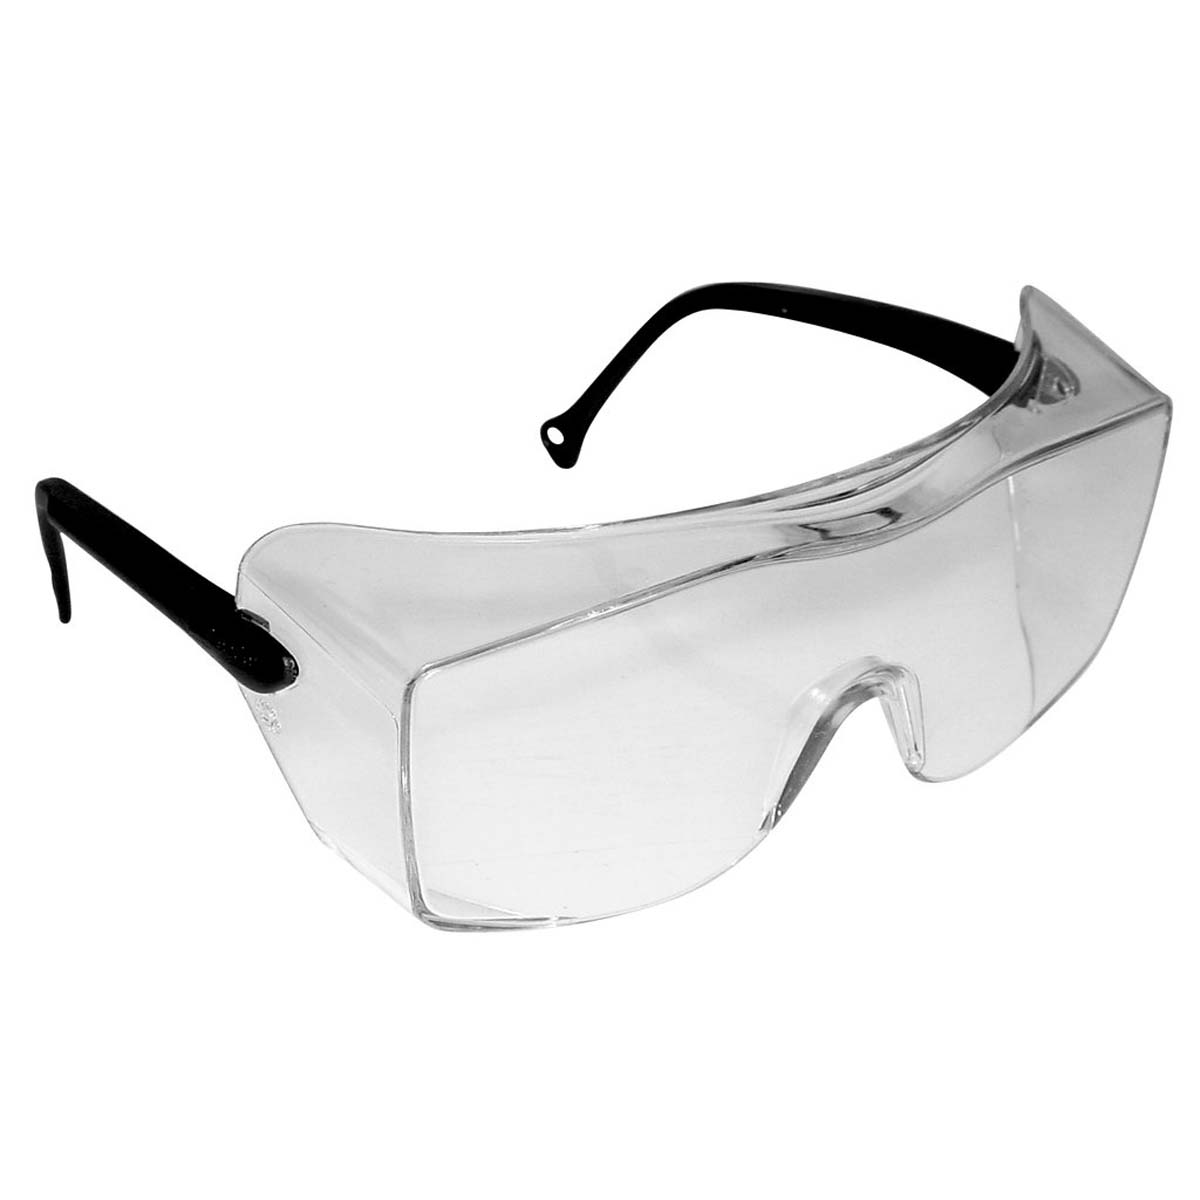 "3Mâ""¢ OXâ""¢ Protective Eyewear 2000, 12163-00000-20 Clear Anti-Fog Lens, Black Temple"